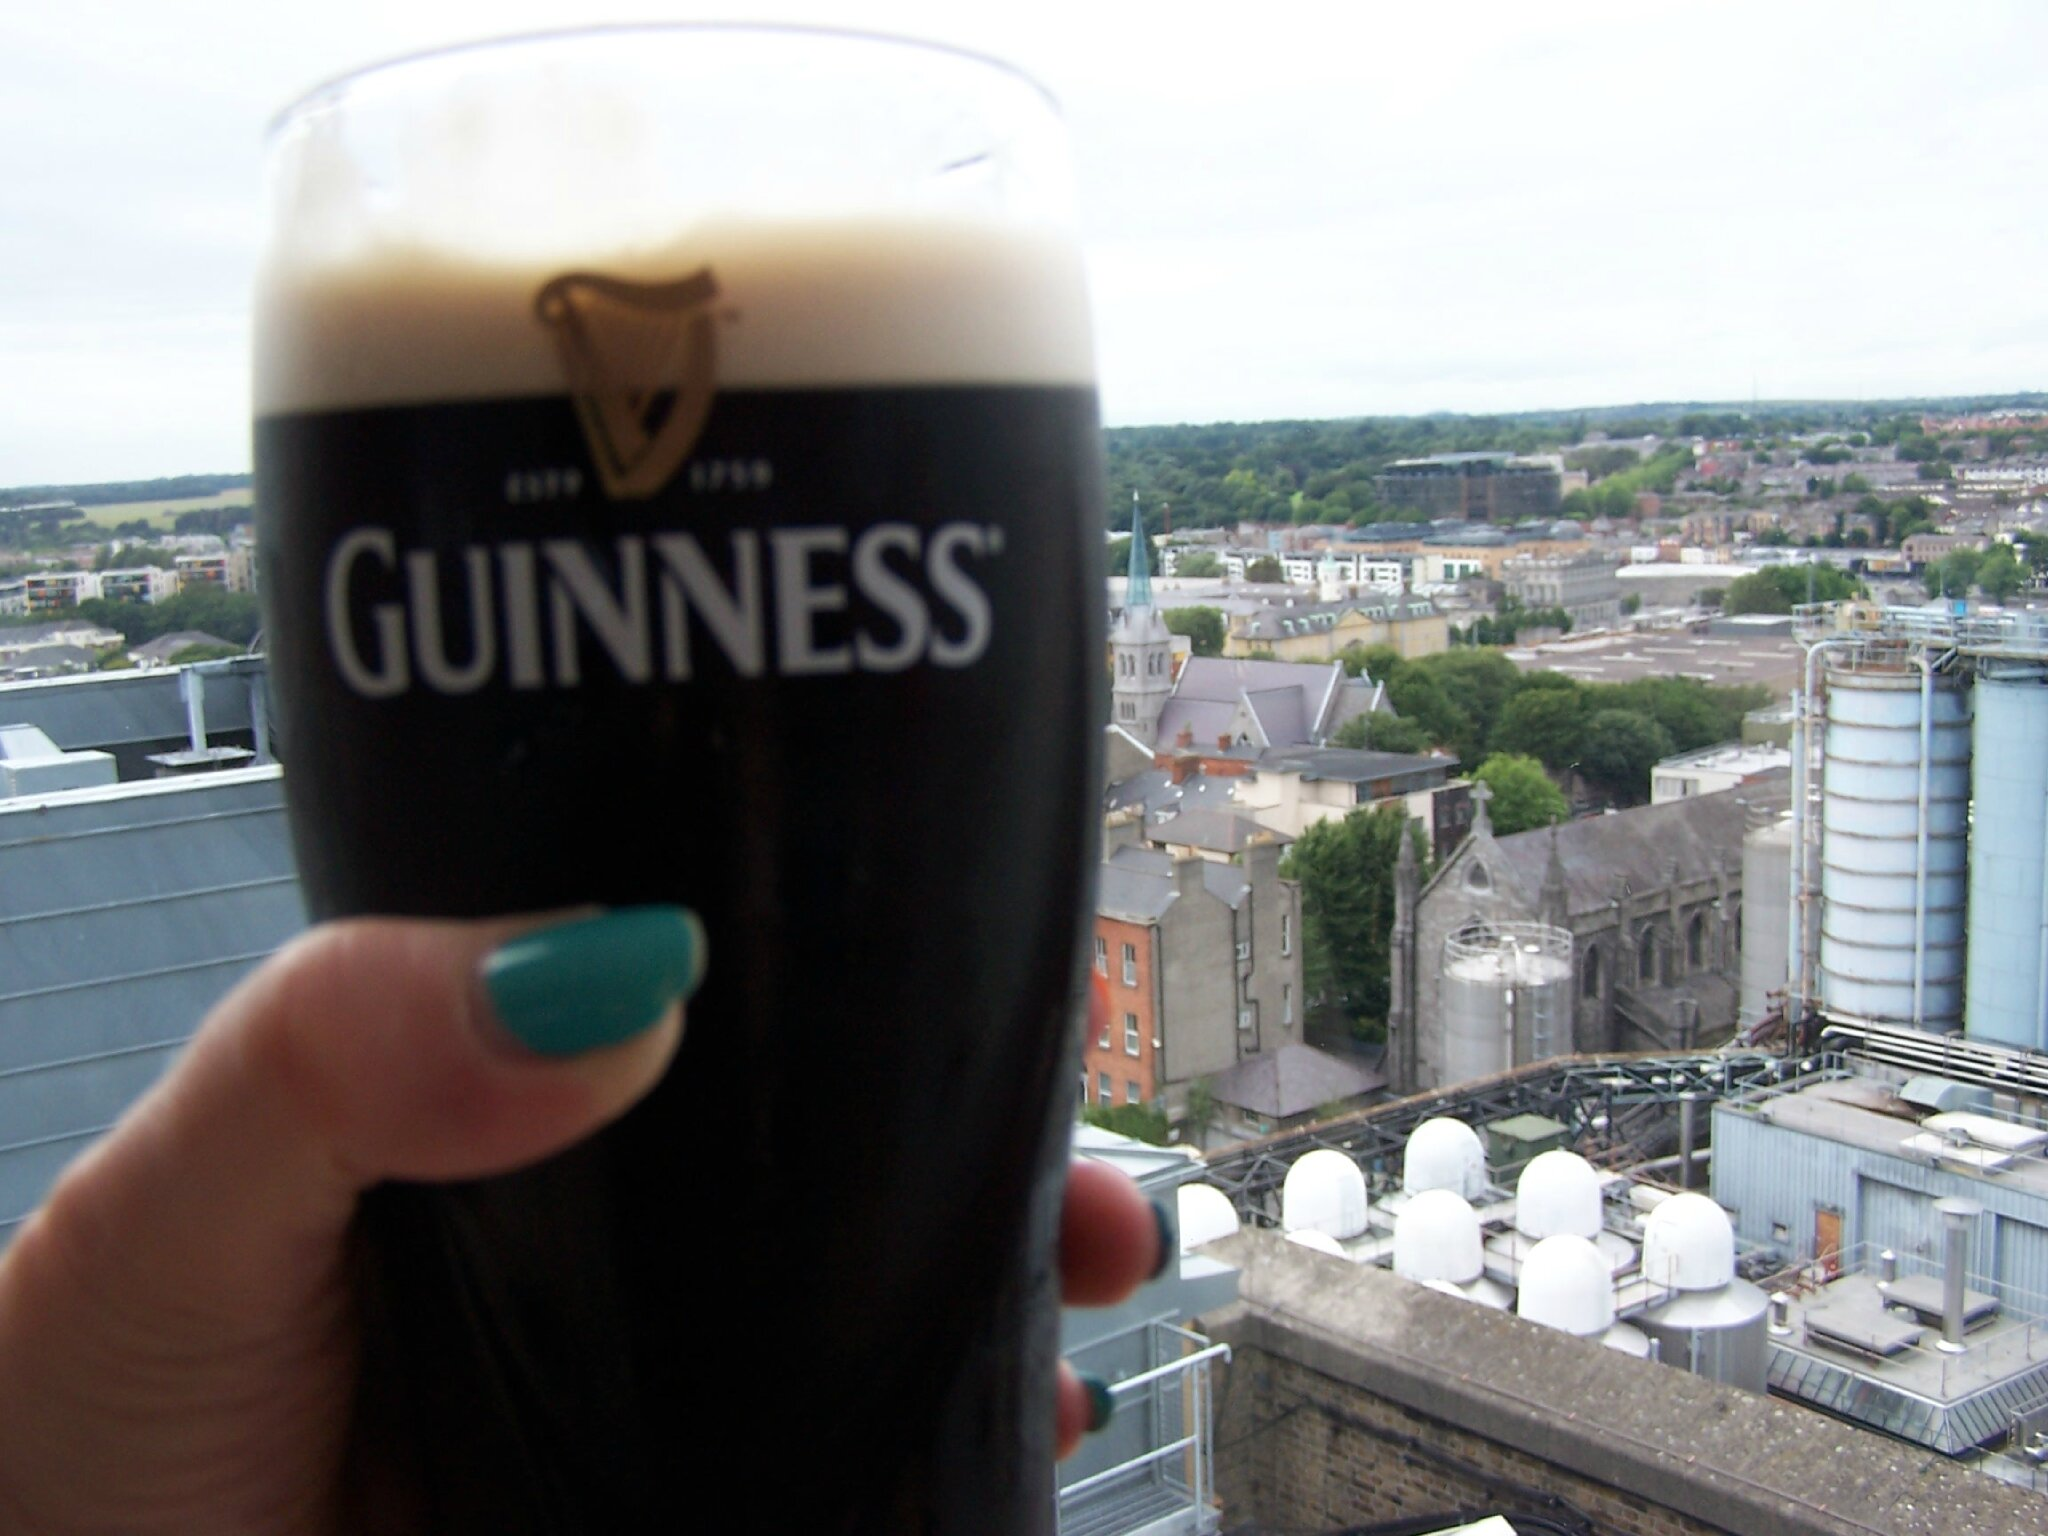 428-guiness